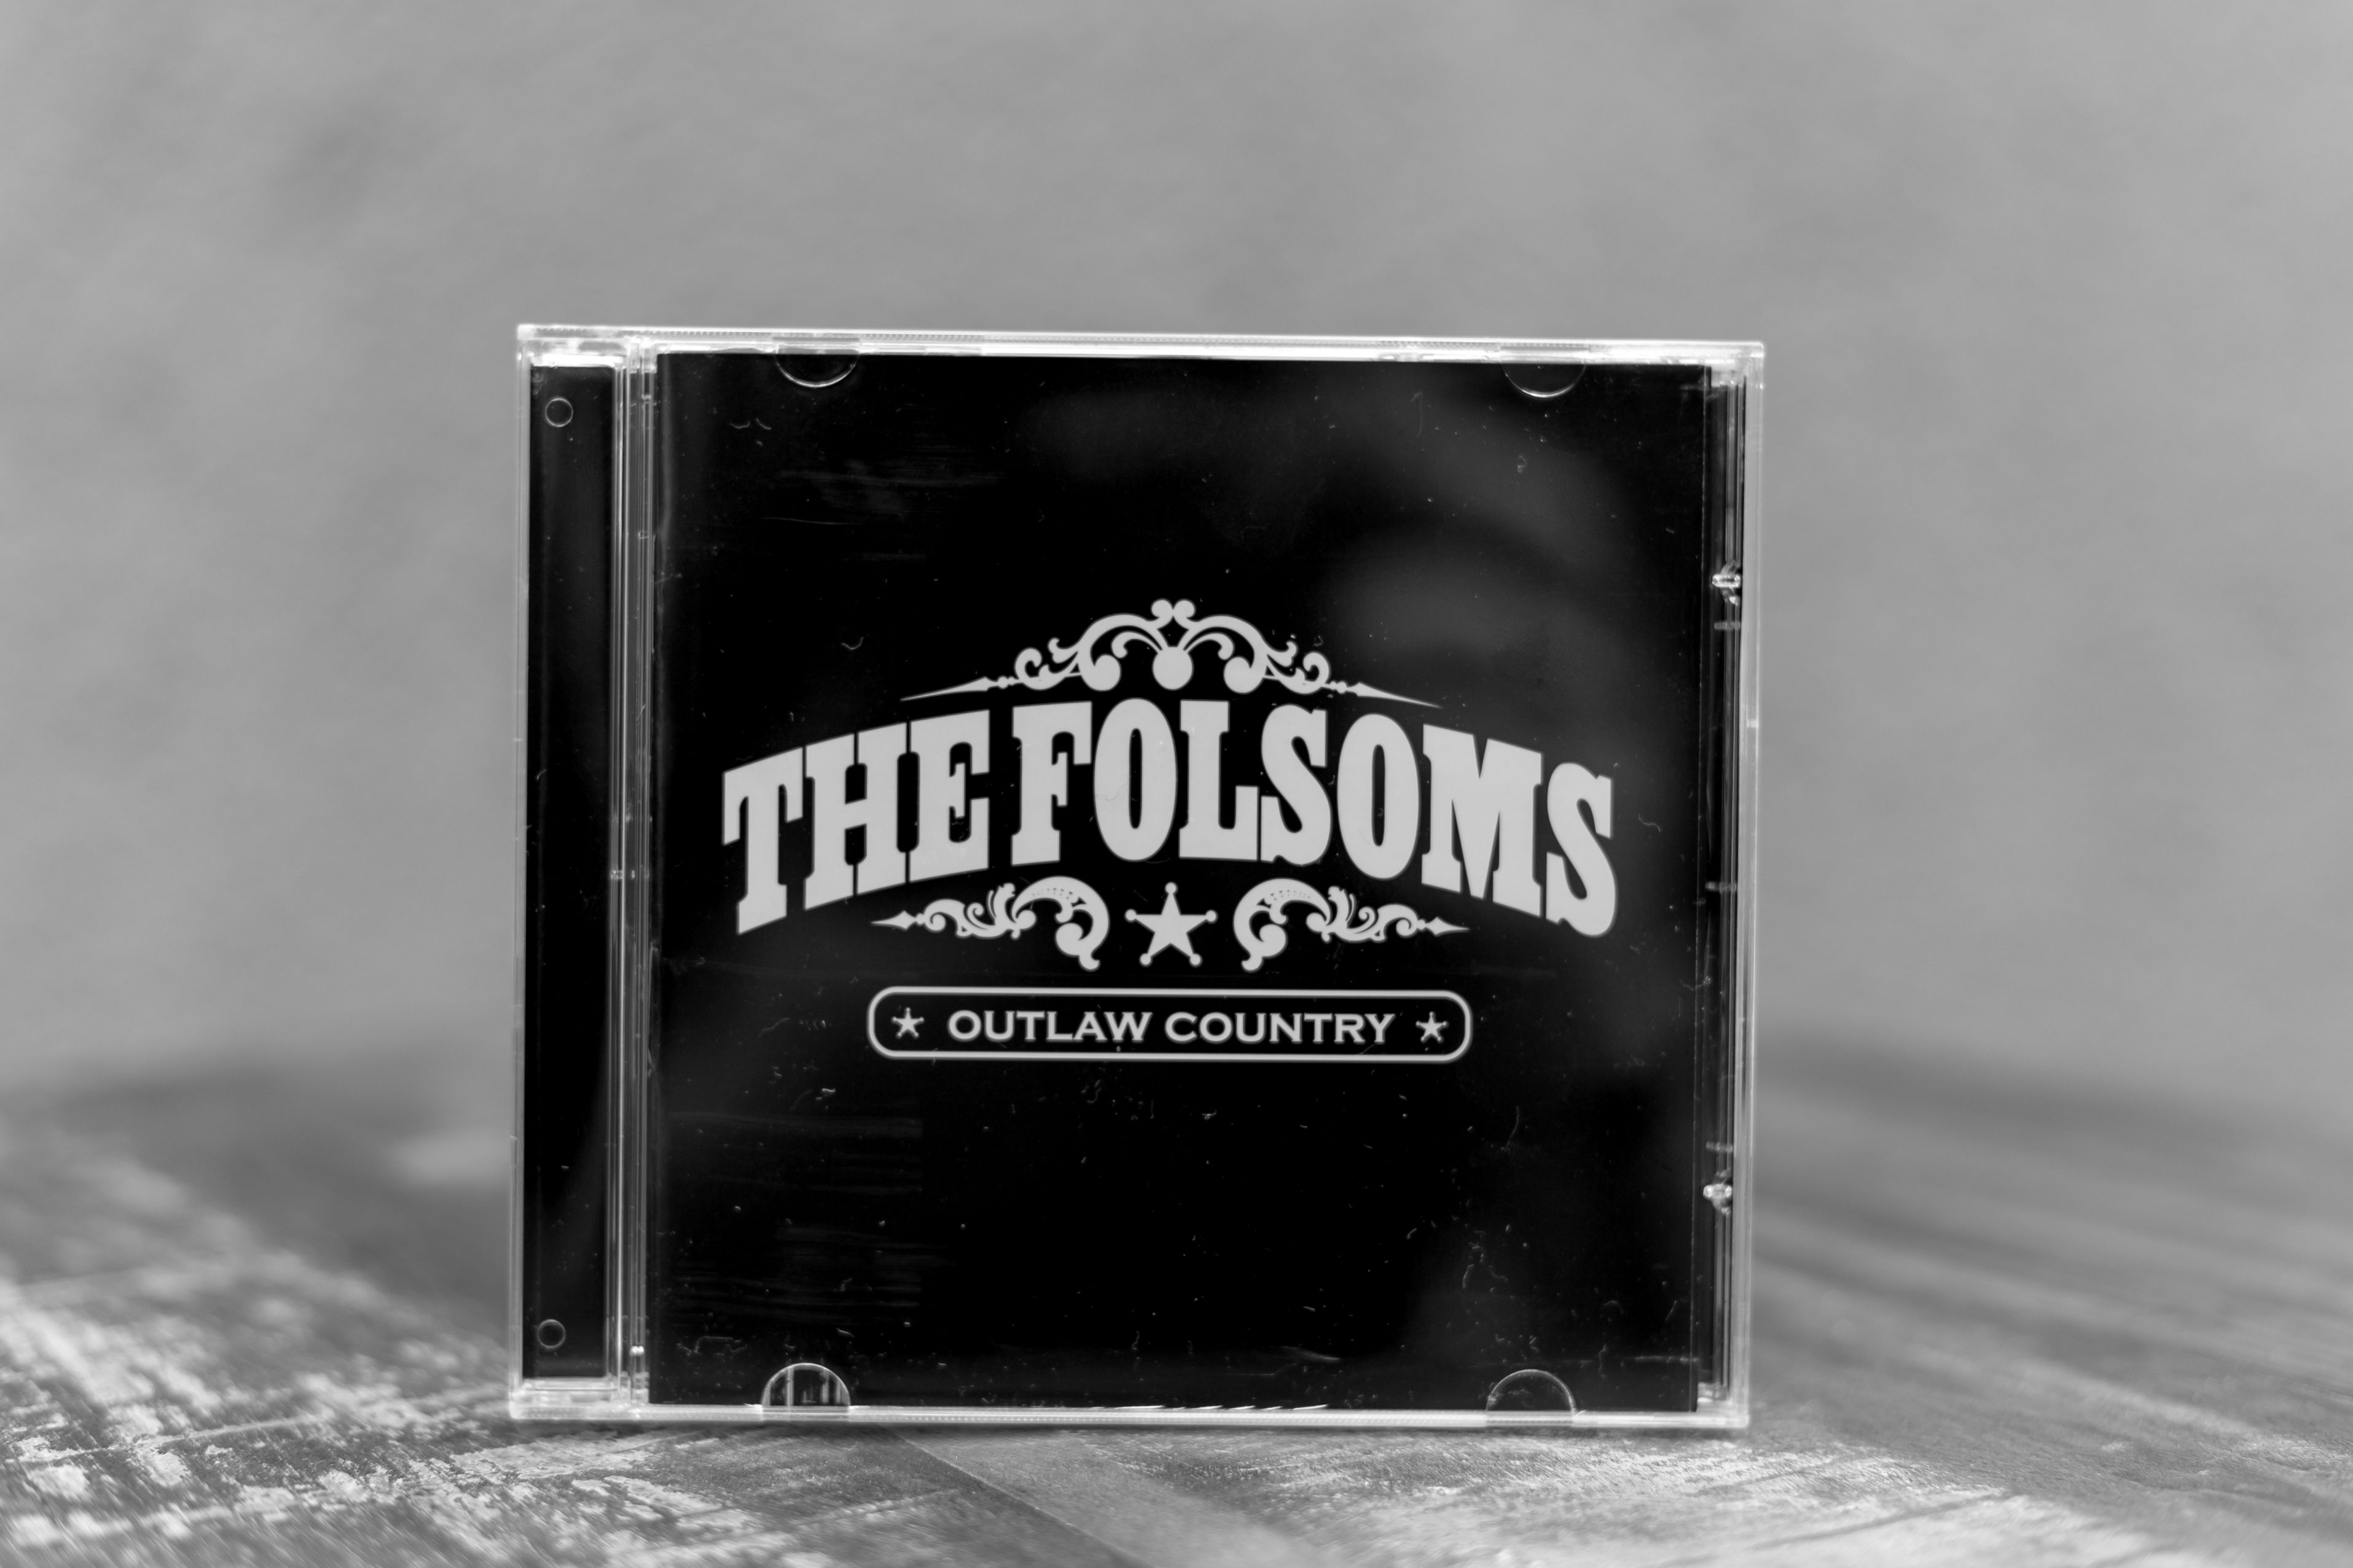 folsoms album